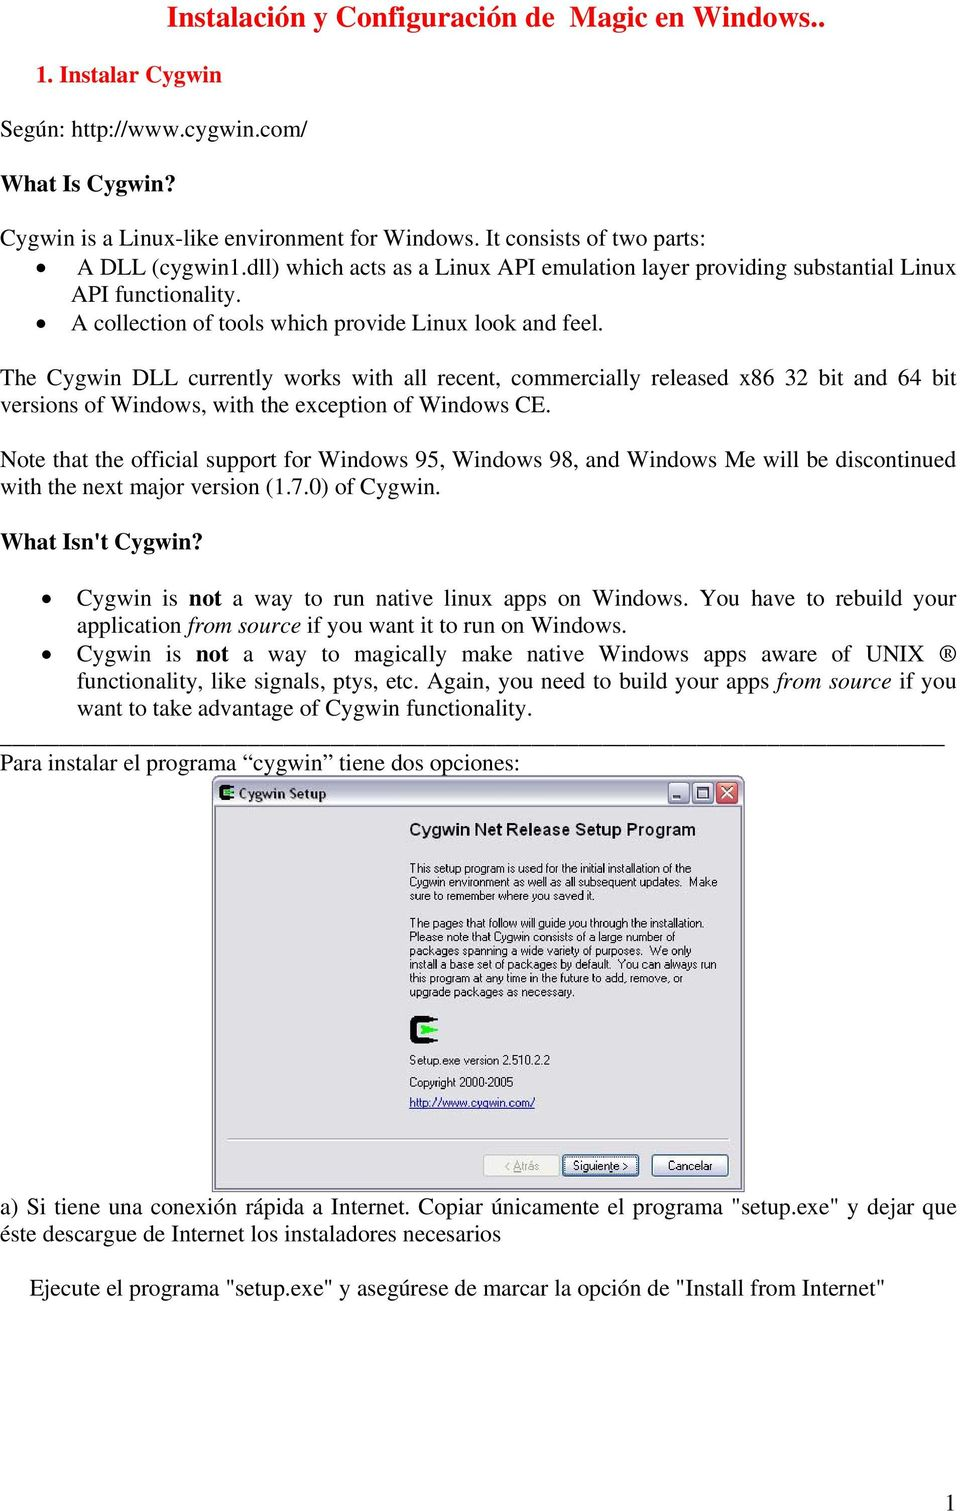 The Cygwin DLL currently works with all recent, commercially released x86 32 bit and 64 bit versions of Windows, with the exception of Windows CE.